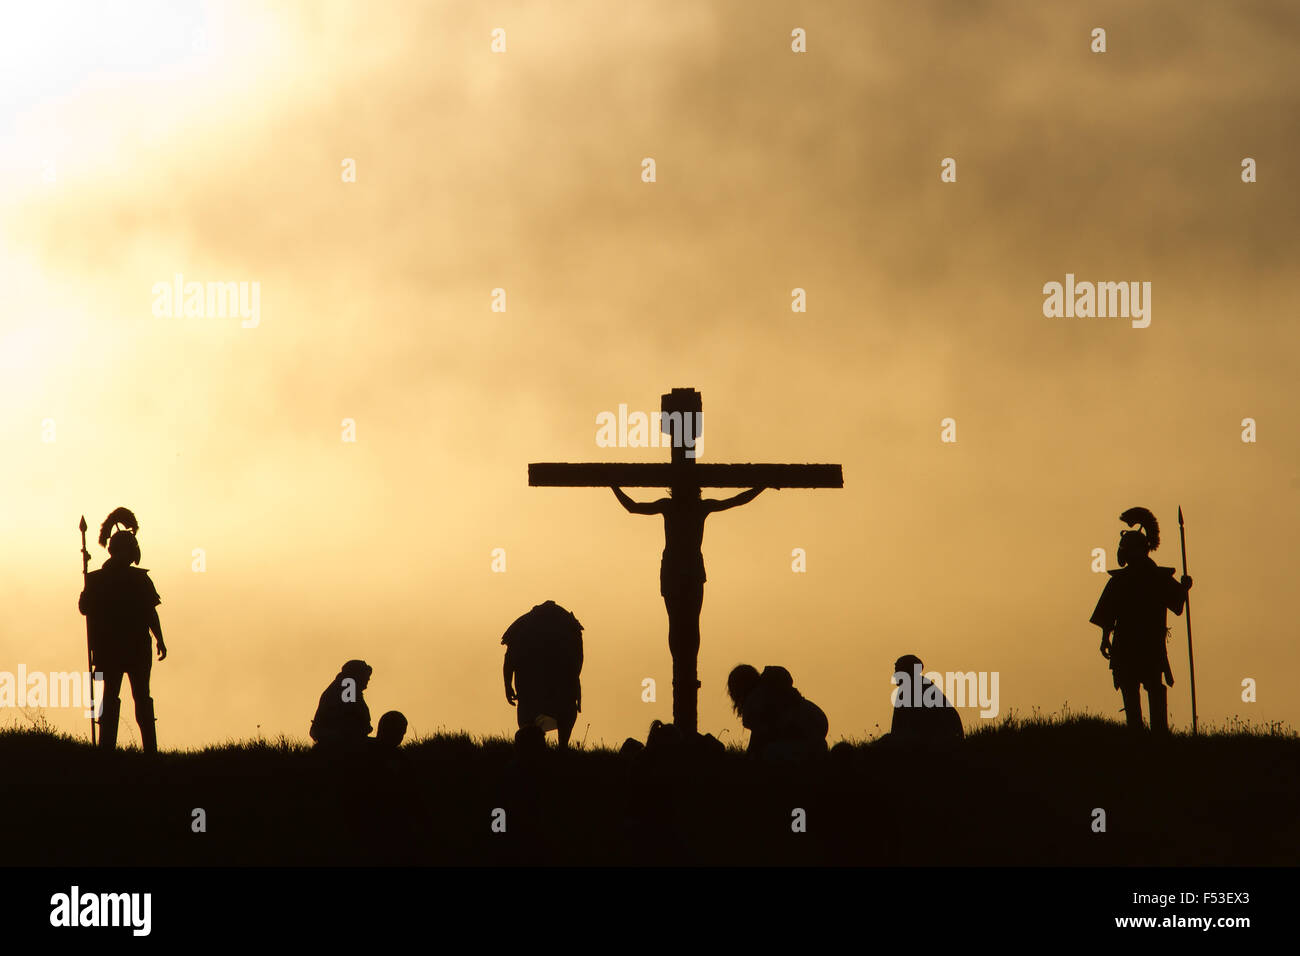 Silhouette of the holy cross on background of storm clouds stock - Crucifixion Scene With Actors In Silhouette Stock Image